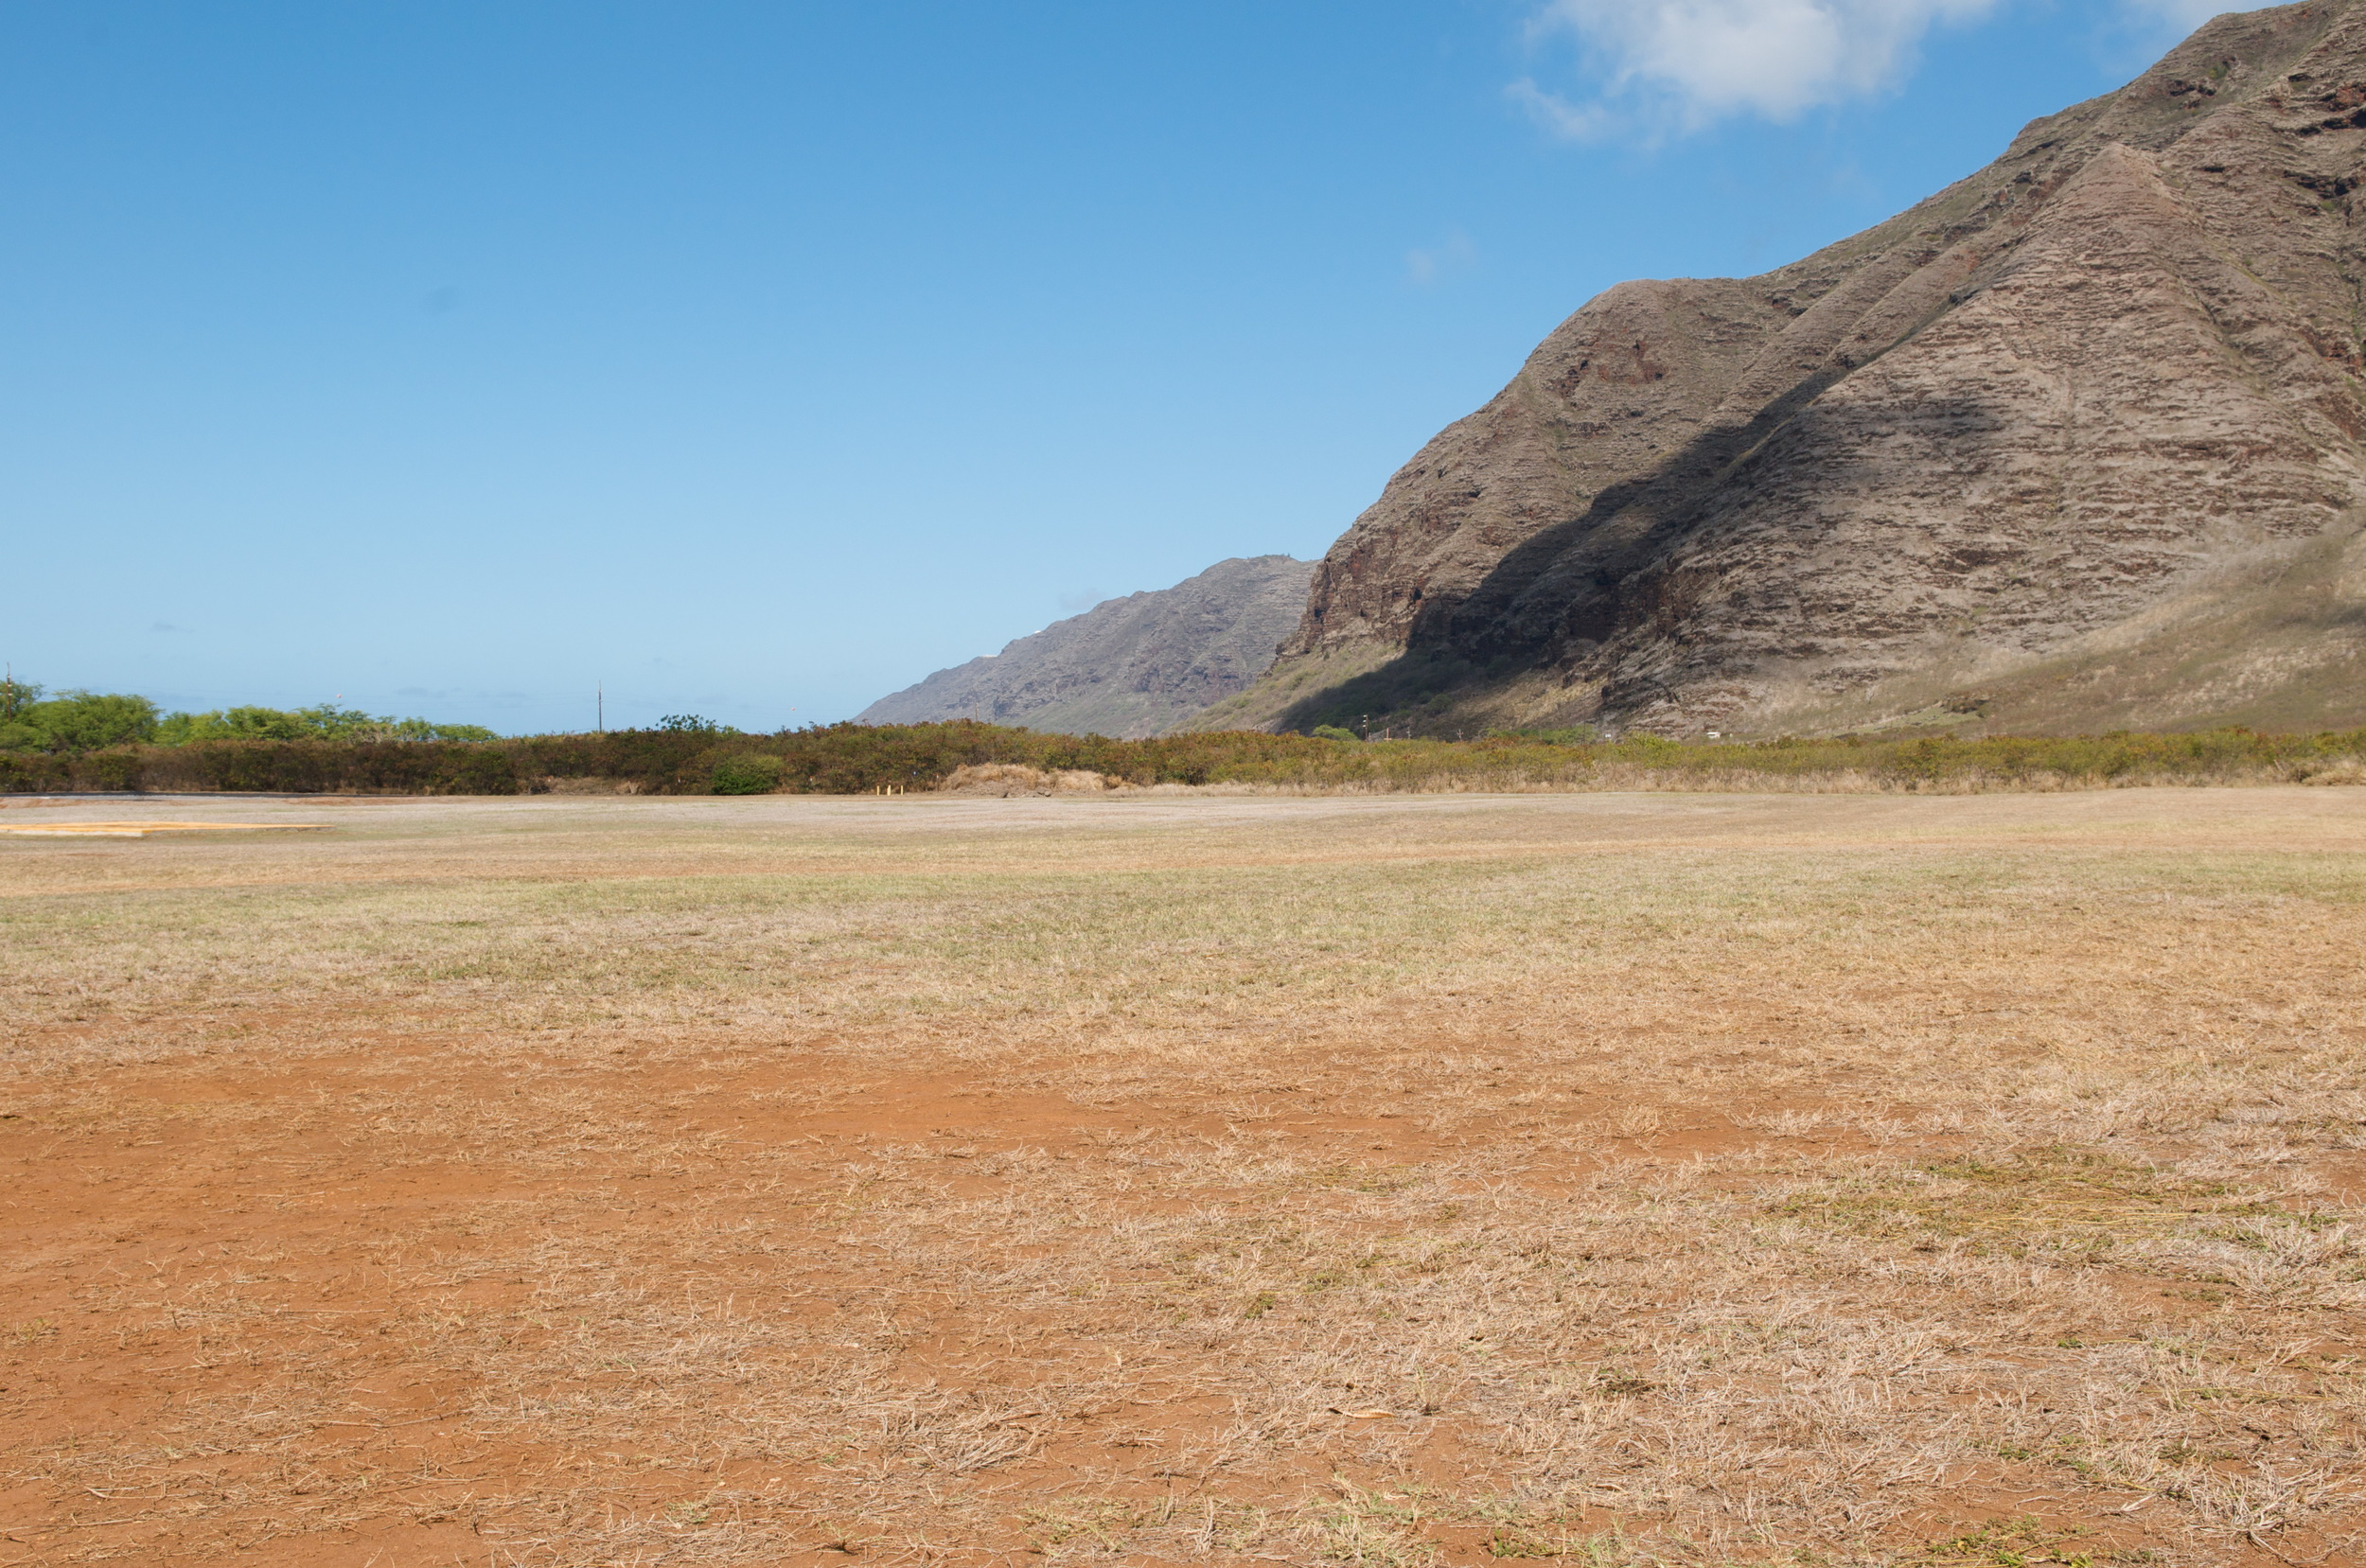 The view towards Kaena point, once one of the most abundant areas for fishing on Oahu. Today, the full extent of the contamination of this area's lands and water are still unknown - based on recent discoveries, the U.S. military's modus operandi has been to deny wrongdoing or responsibility until someone can produce a mountain-sized pile of incriminating evidence and documentation.